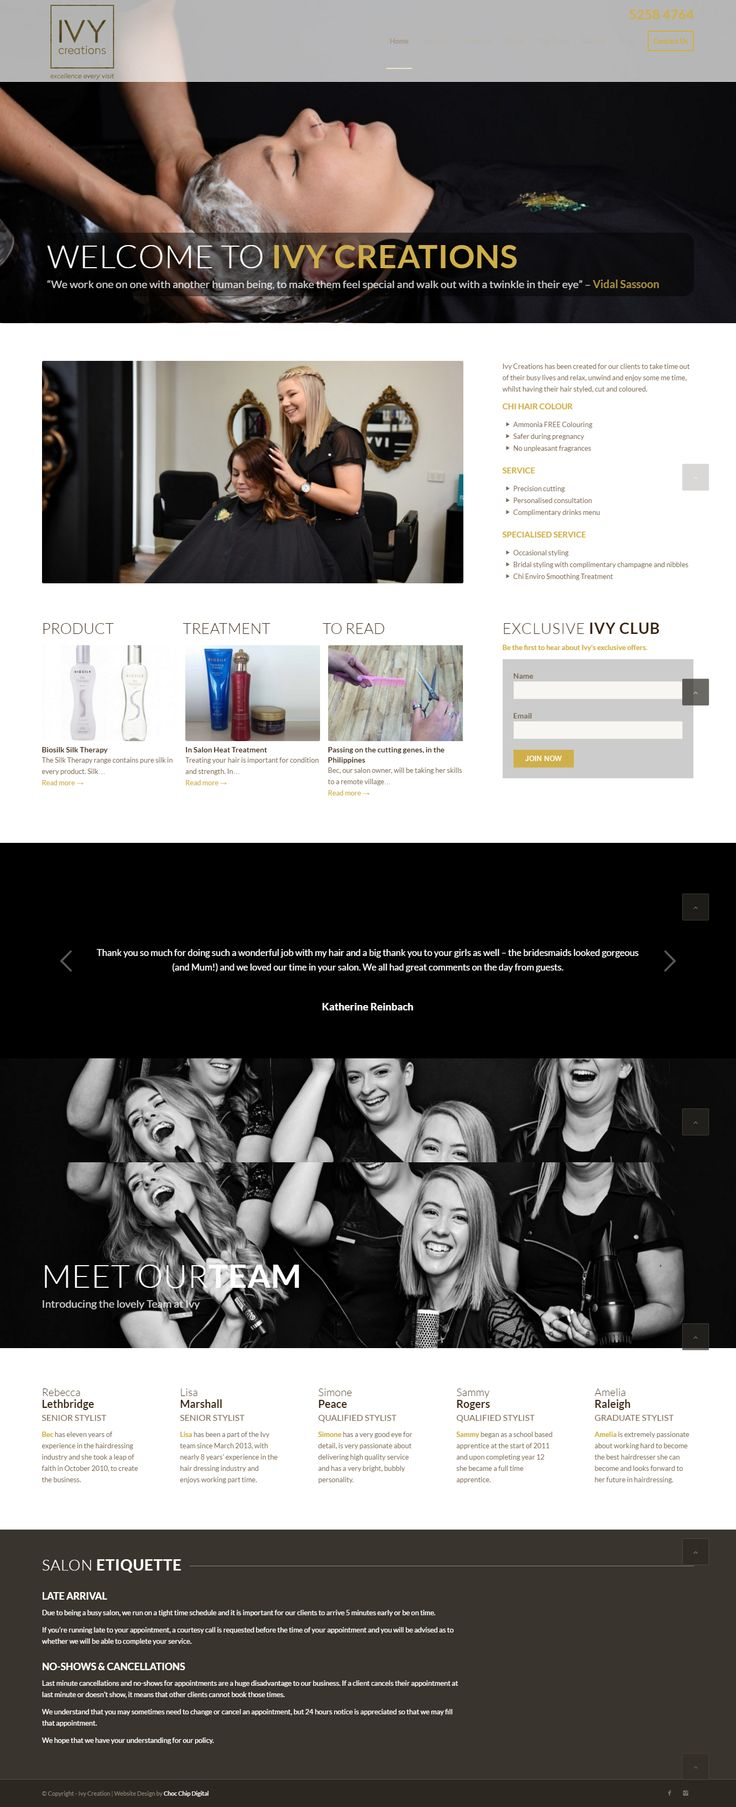 Style and fun at Ivy Creations hair salon.  A hairdressing salon specialising in high quality haircuts and styling. The team needed a website that could showcase their styles, reflect the standard of service they provided, and be found Google as a key marketing tool.